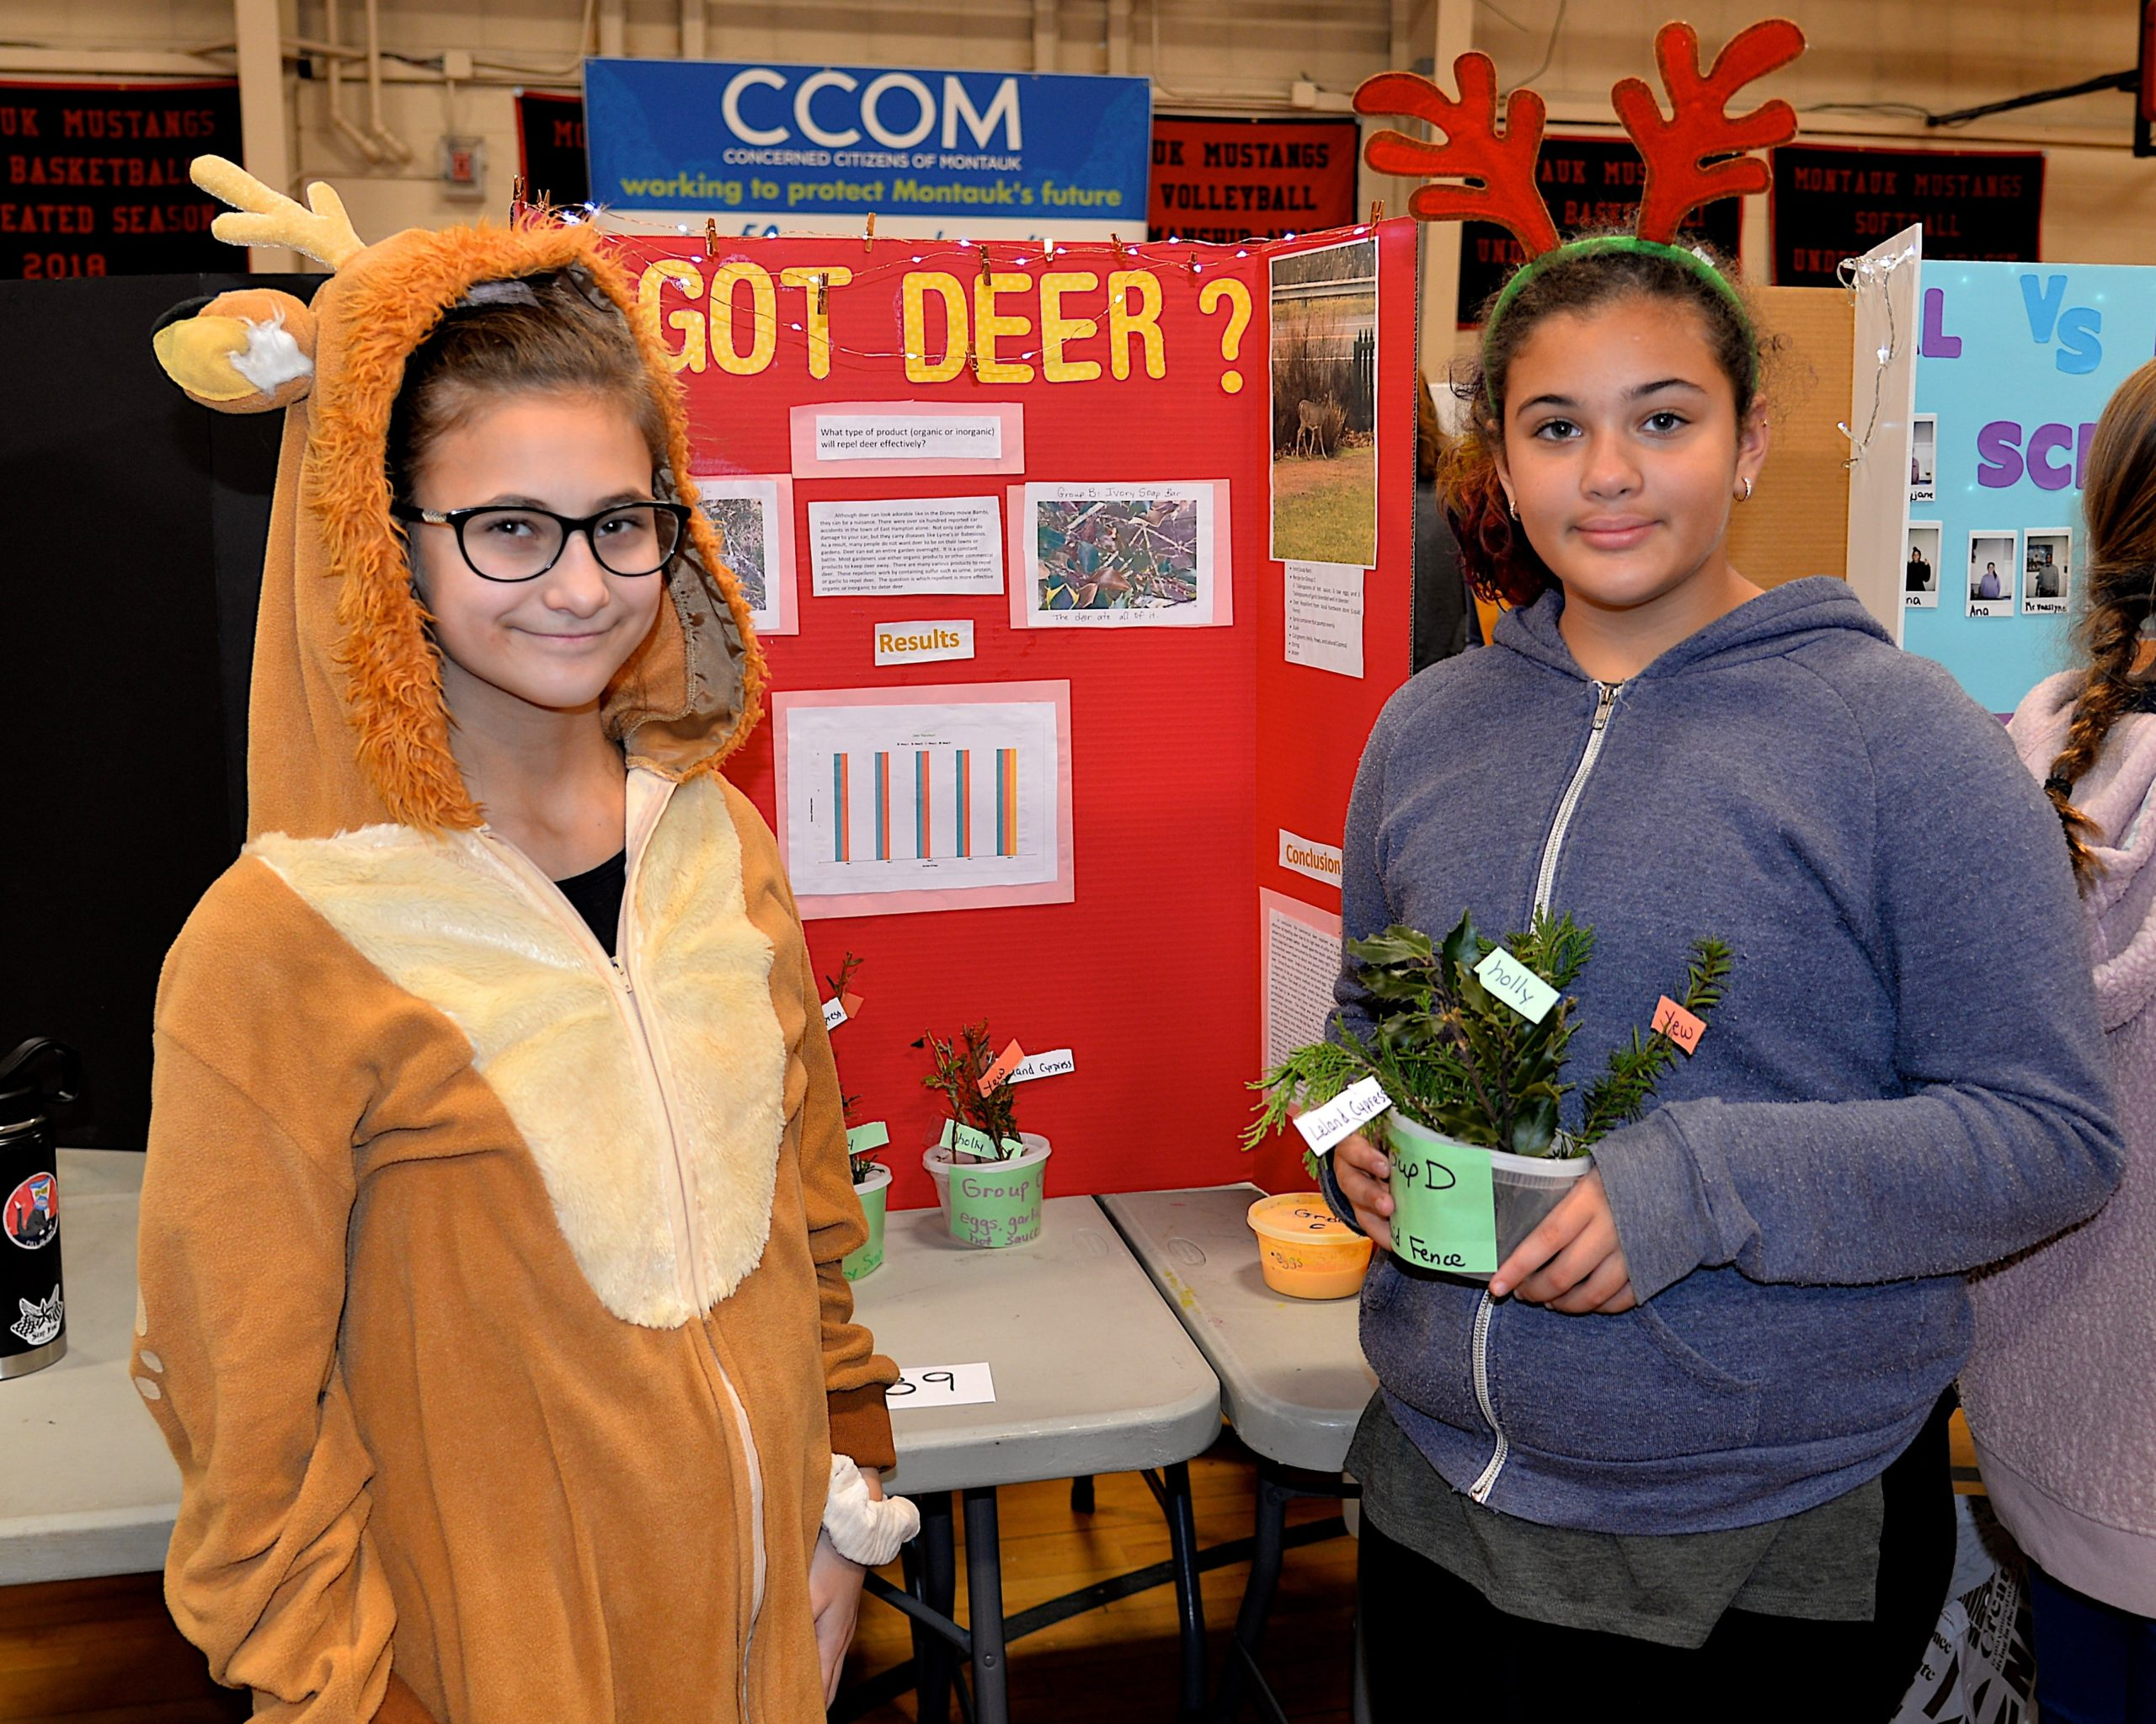 Montauk School and the Concerned Citizens of Montauk partnered for the annual Montauk School Science Fair on Friday. Mary Jo Corron and Liann Valentin studied the deer-repelling qualities of various plants. KYRIL BROMLEY